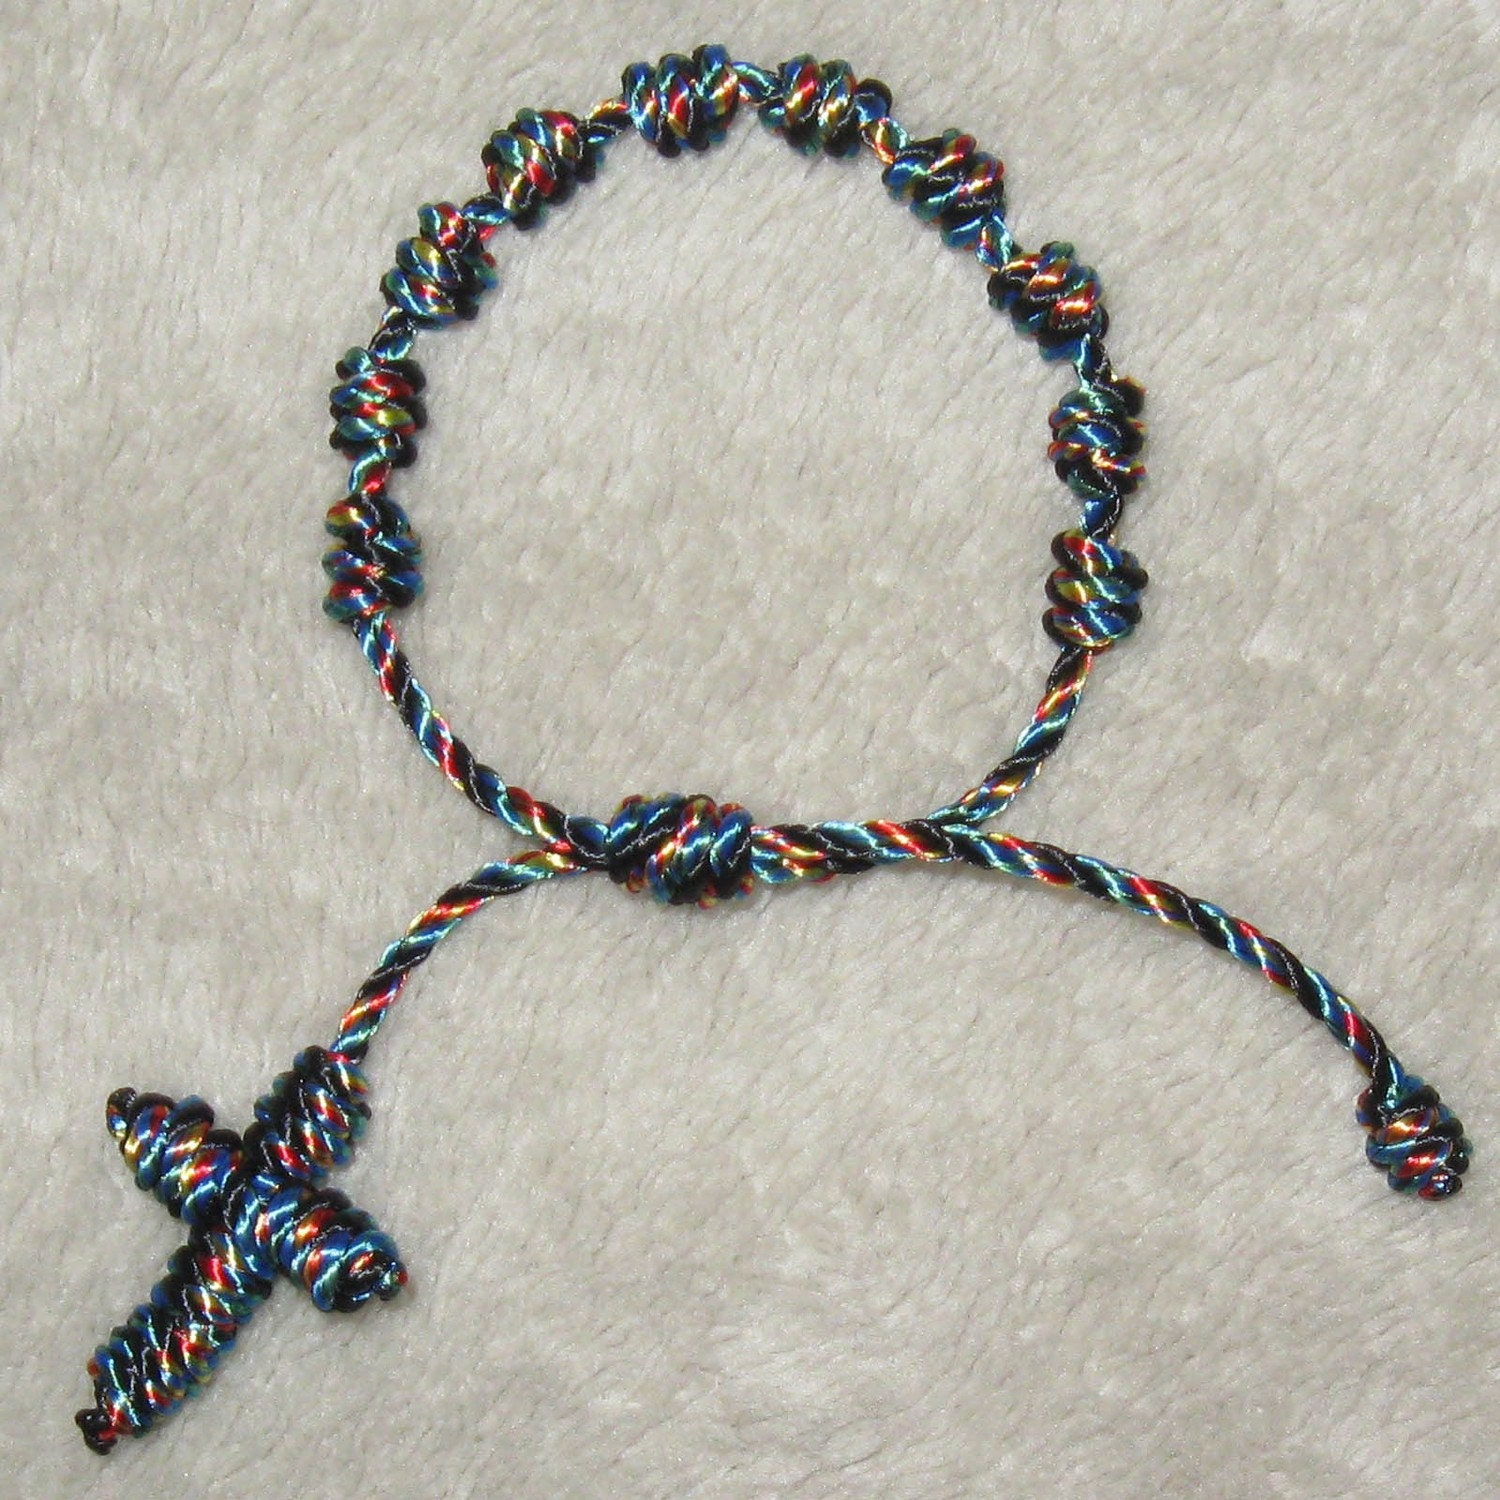 knotted cord catholic rosary bracelet autism colors